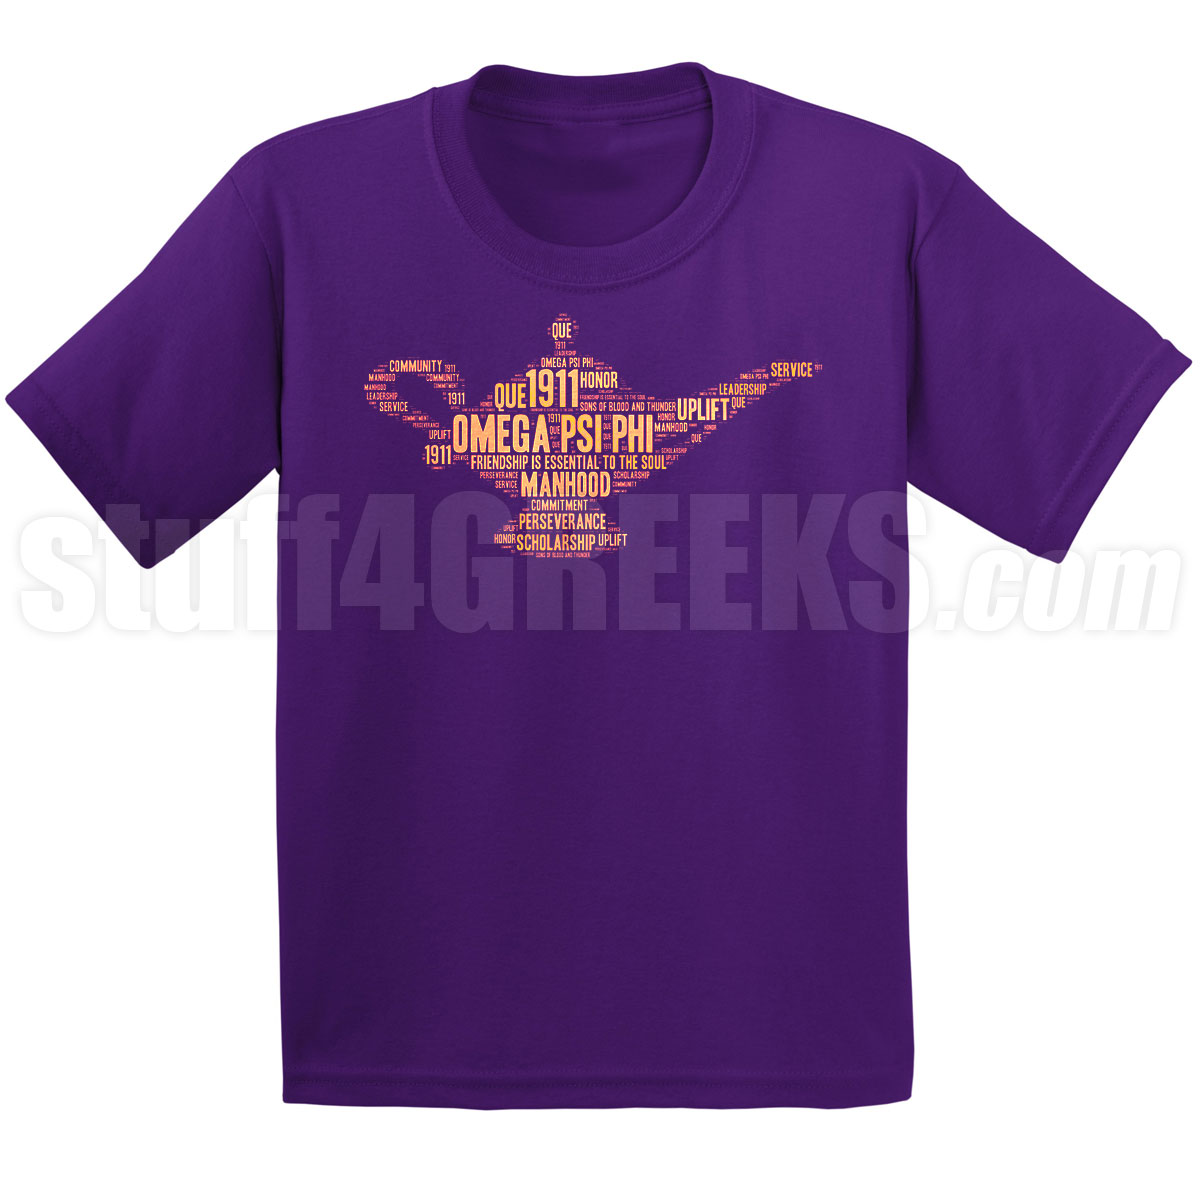 Omega Psi Phi Lamp In Gold On Purple Screen Printed T